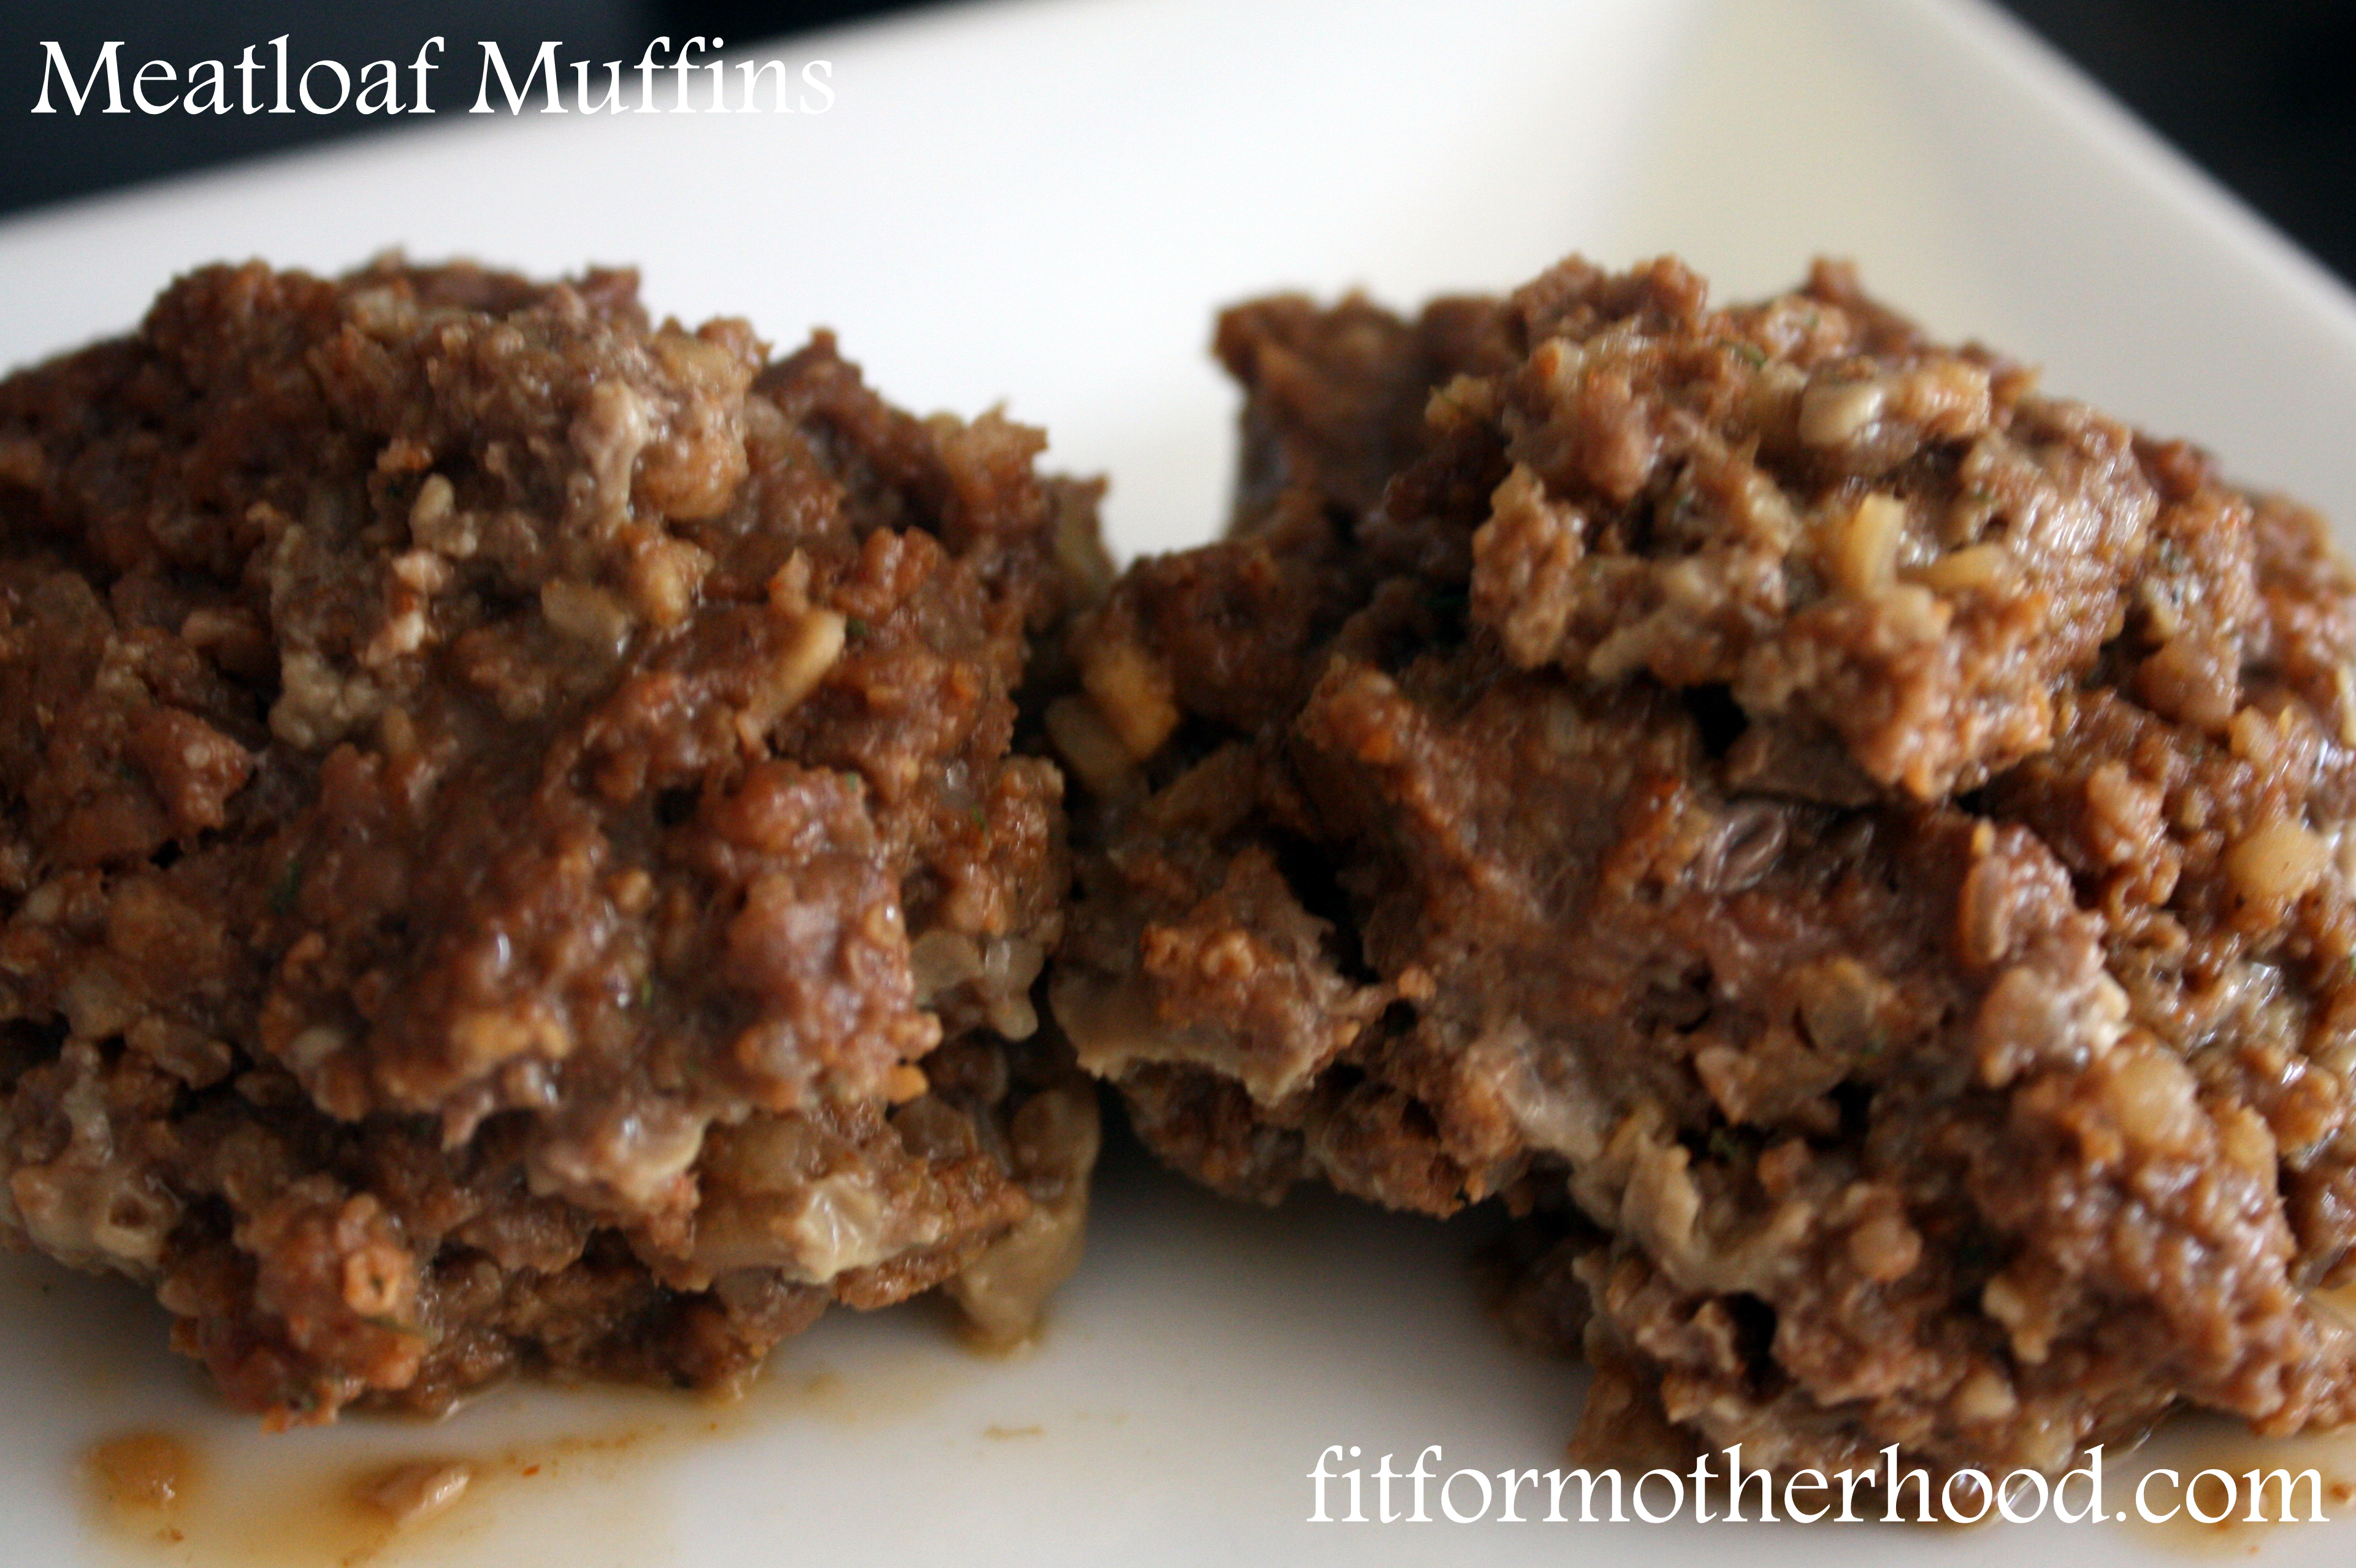 Easy Meatloaf Muffins